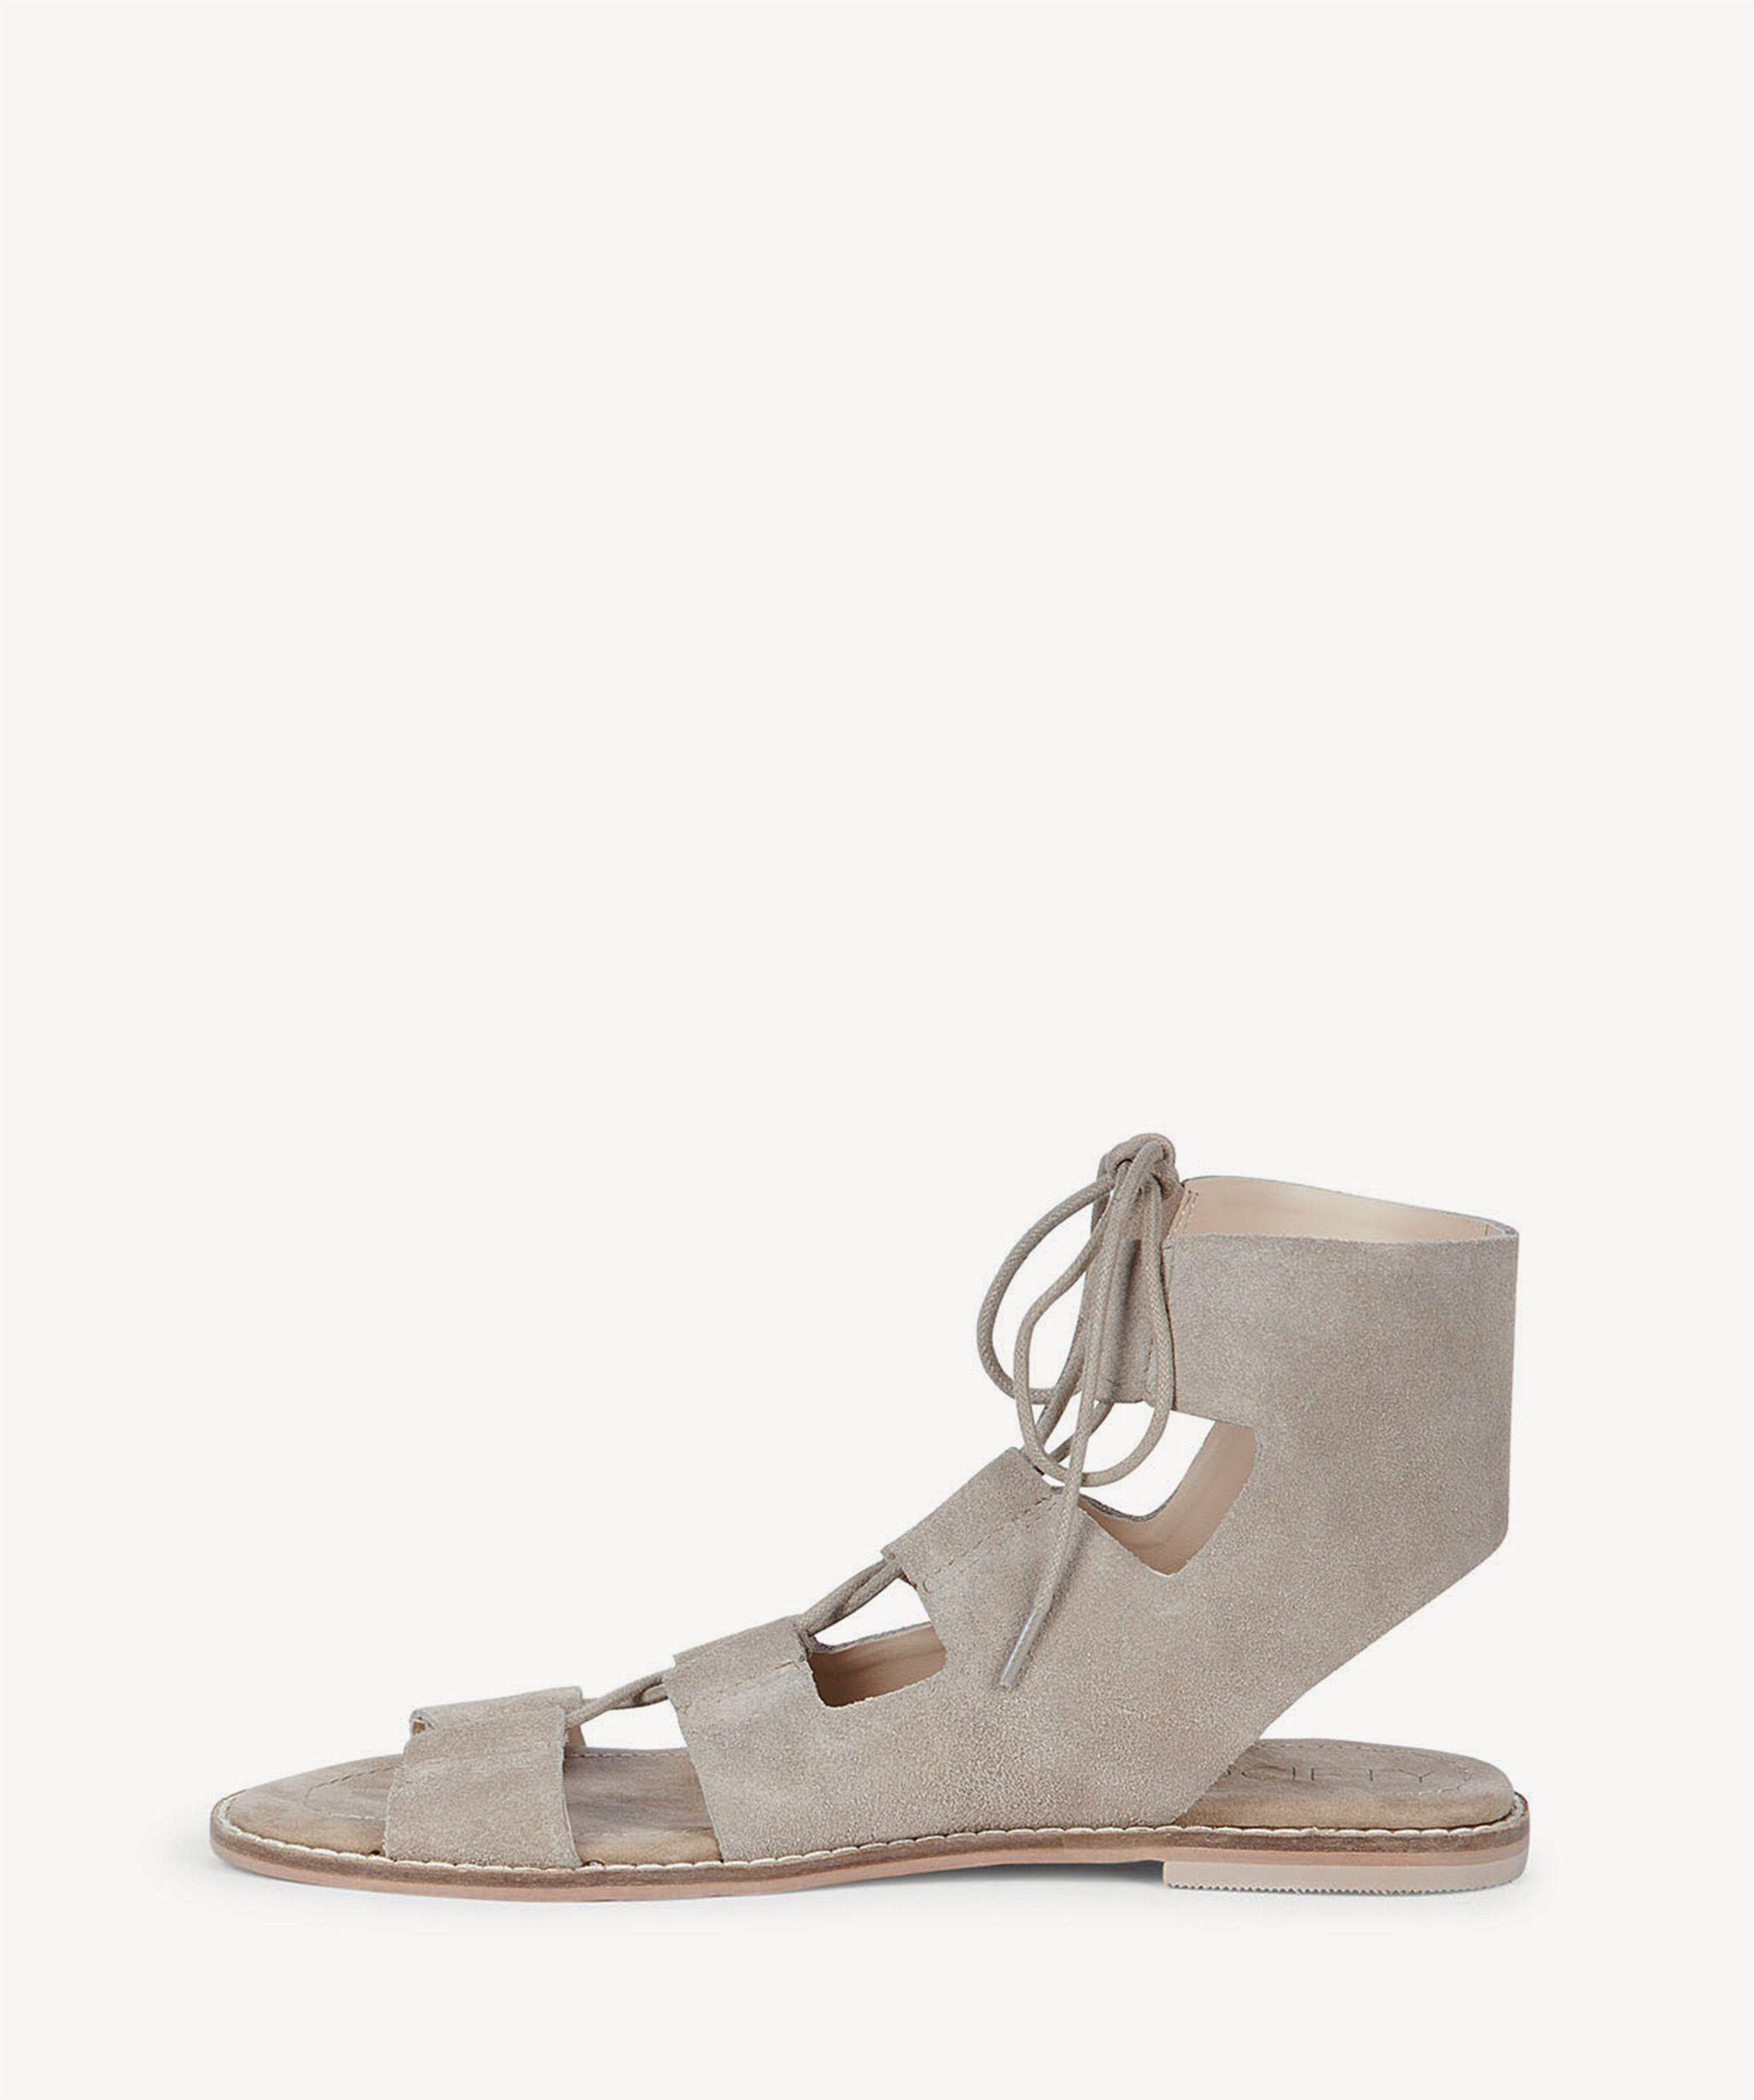 2330da02539 Lyst - Sole Society Cady Lace-up Flat Sandal in Natural